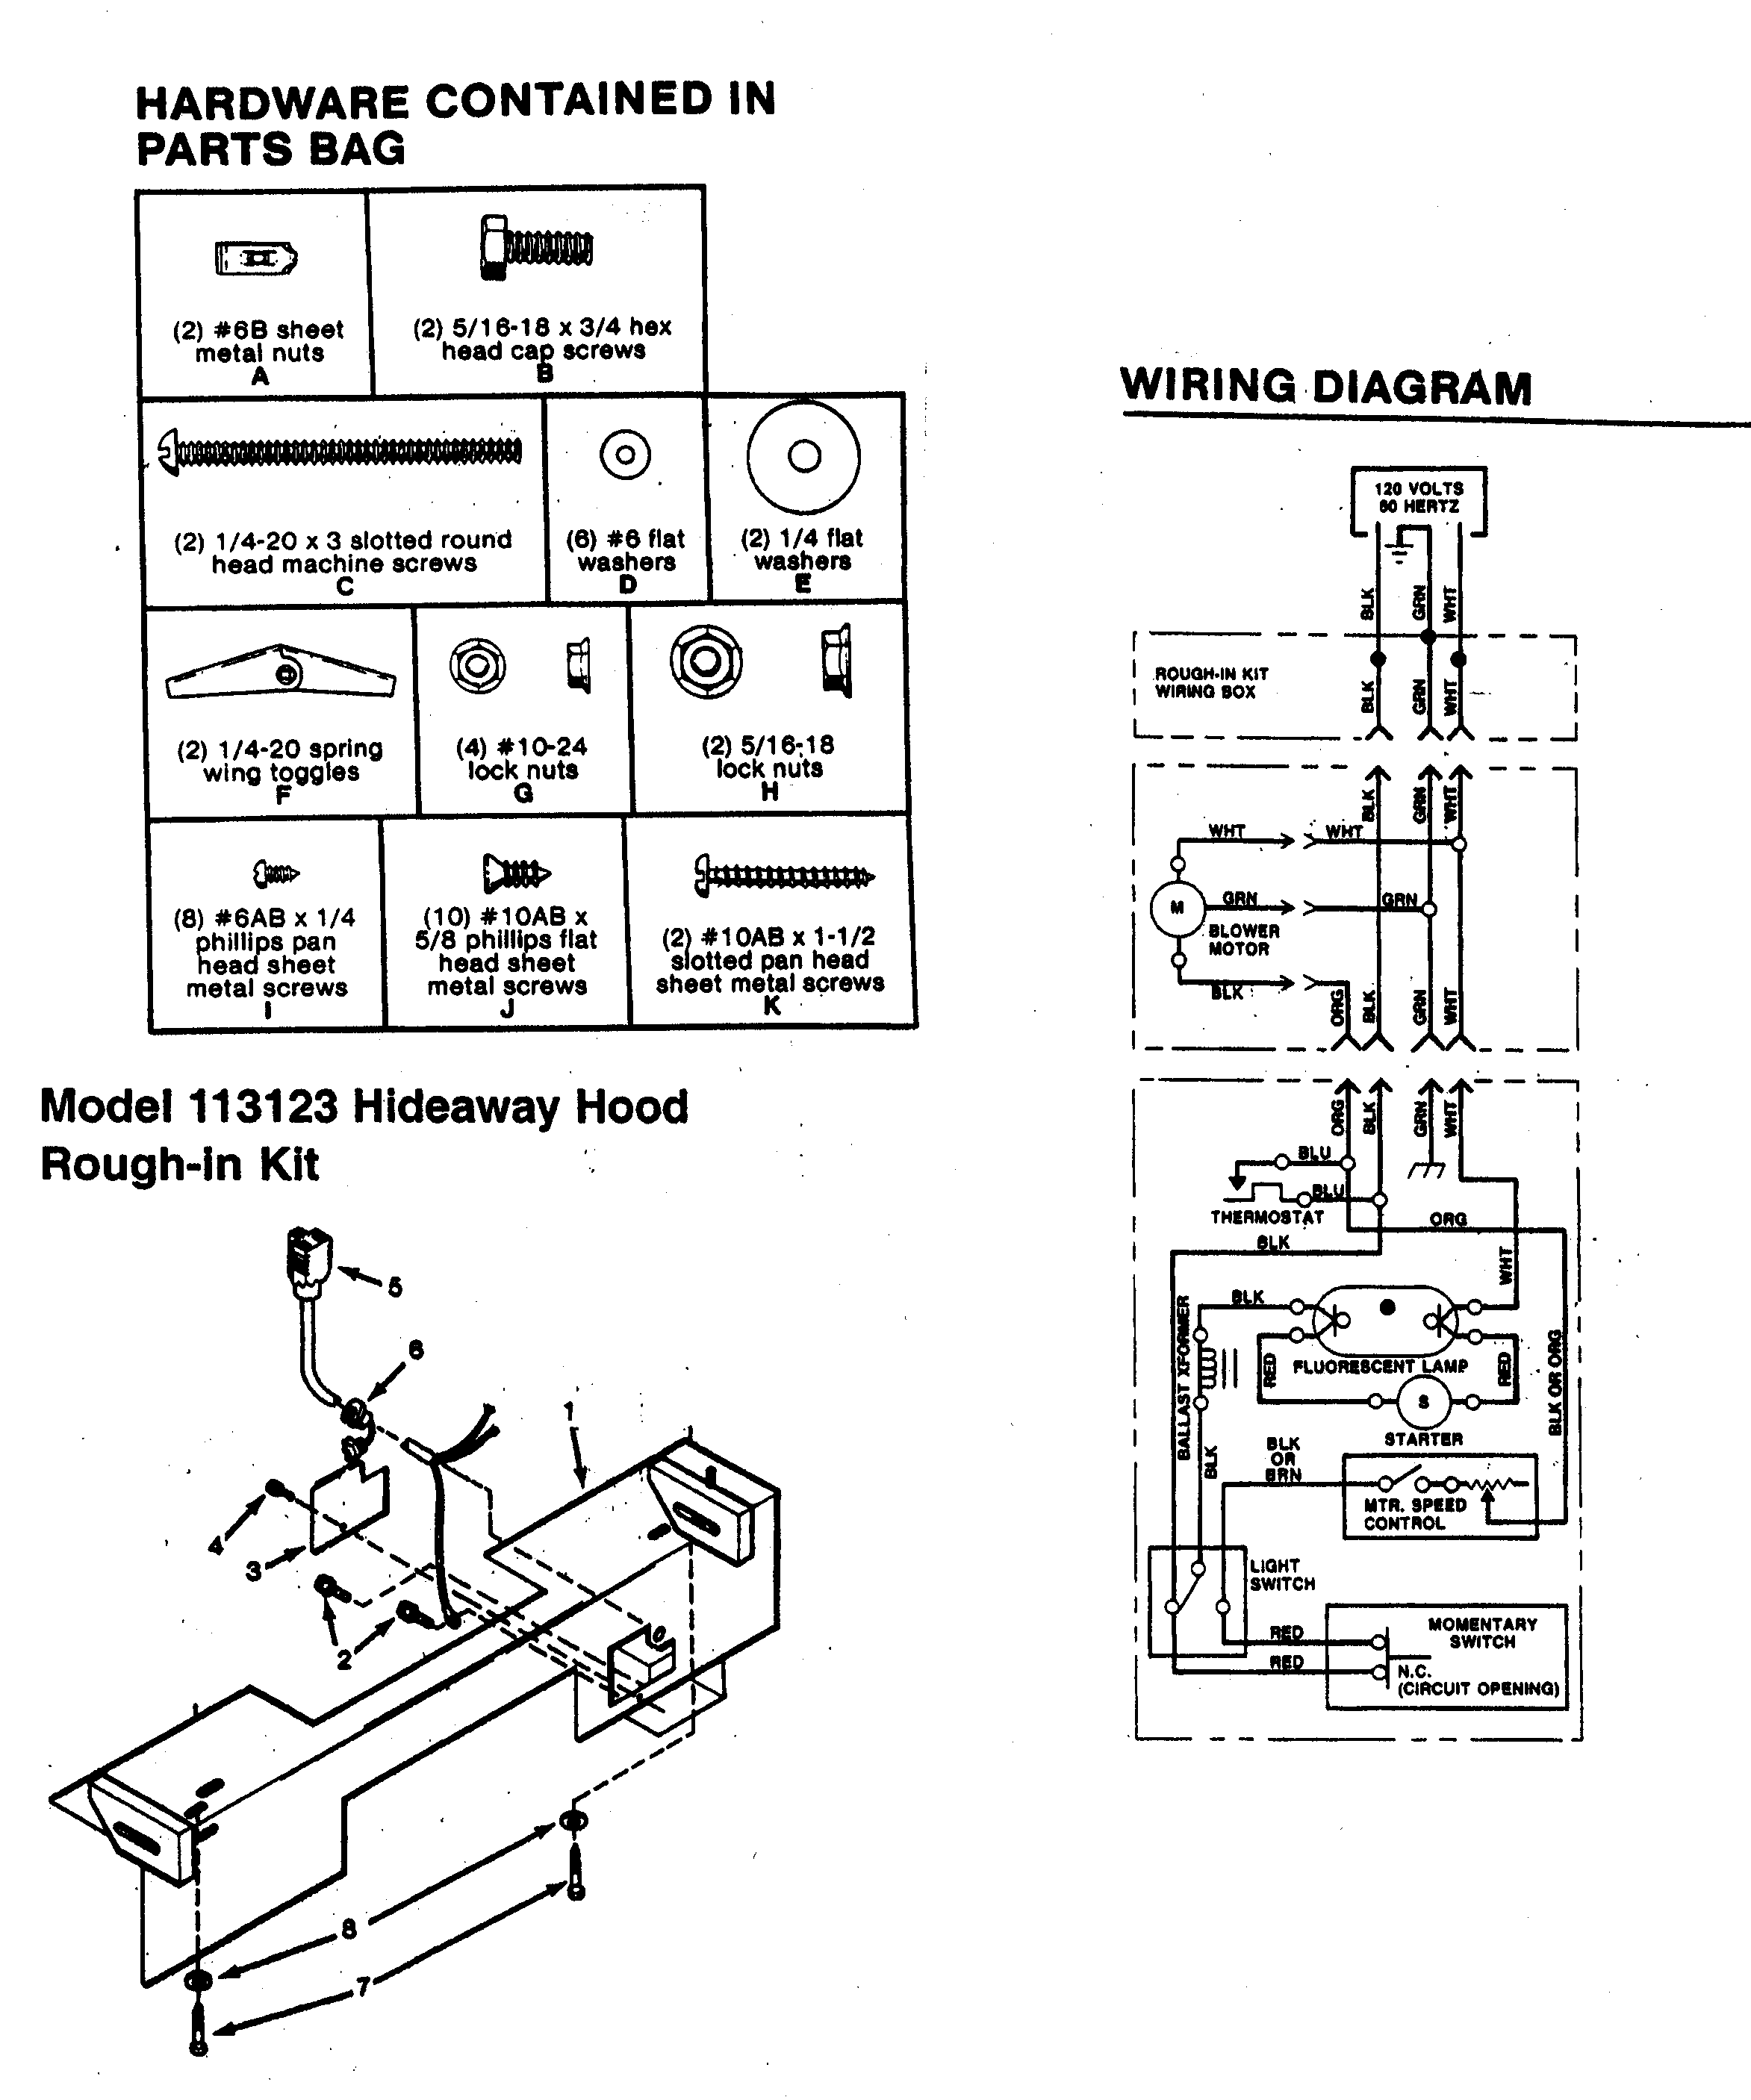 50026113 00002?resize\\=665%2C797 nutone heater wiring diagram hunter wiring diagram, danby wiring crosley dryer wiring diagram at edmiracle.co